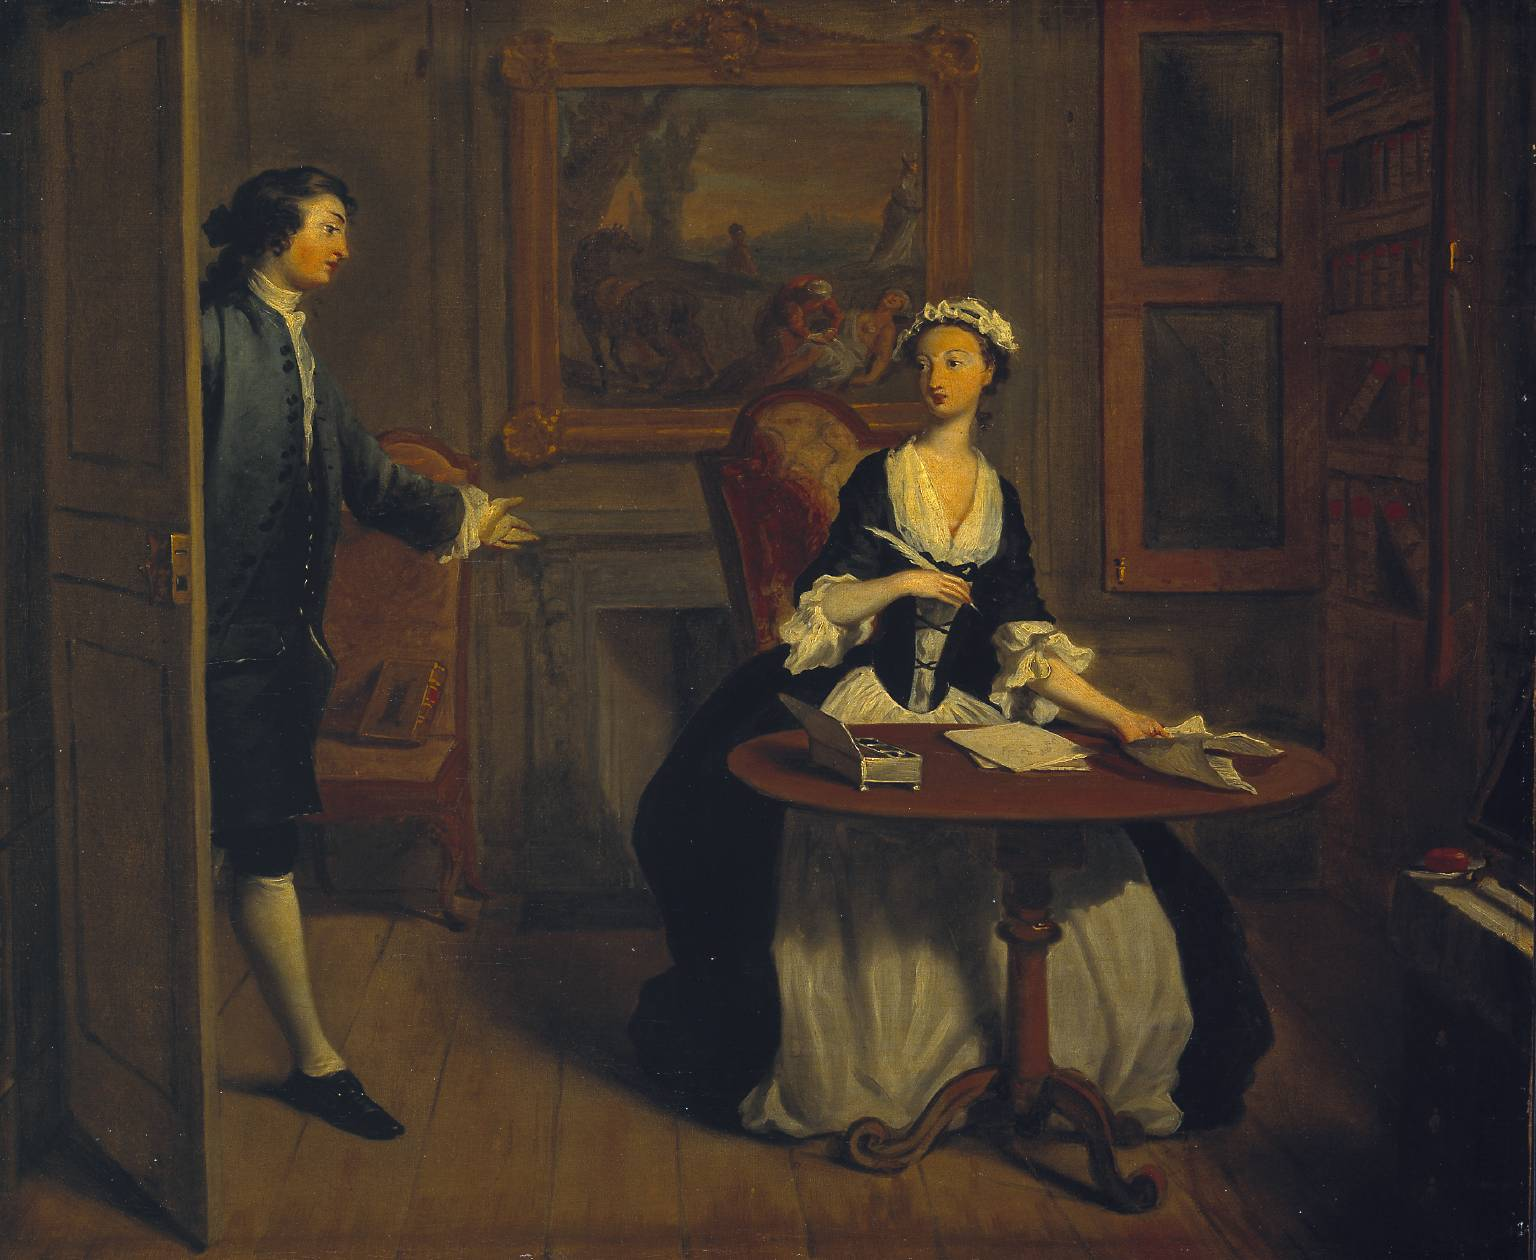 an analysis of the epistolary novel clarissa by samuel richardson Clarissa, or, the history of a young lady: an eighteenth-century epistolary novel by samuel richardson and one of the longest written in the english language.